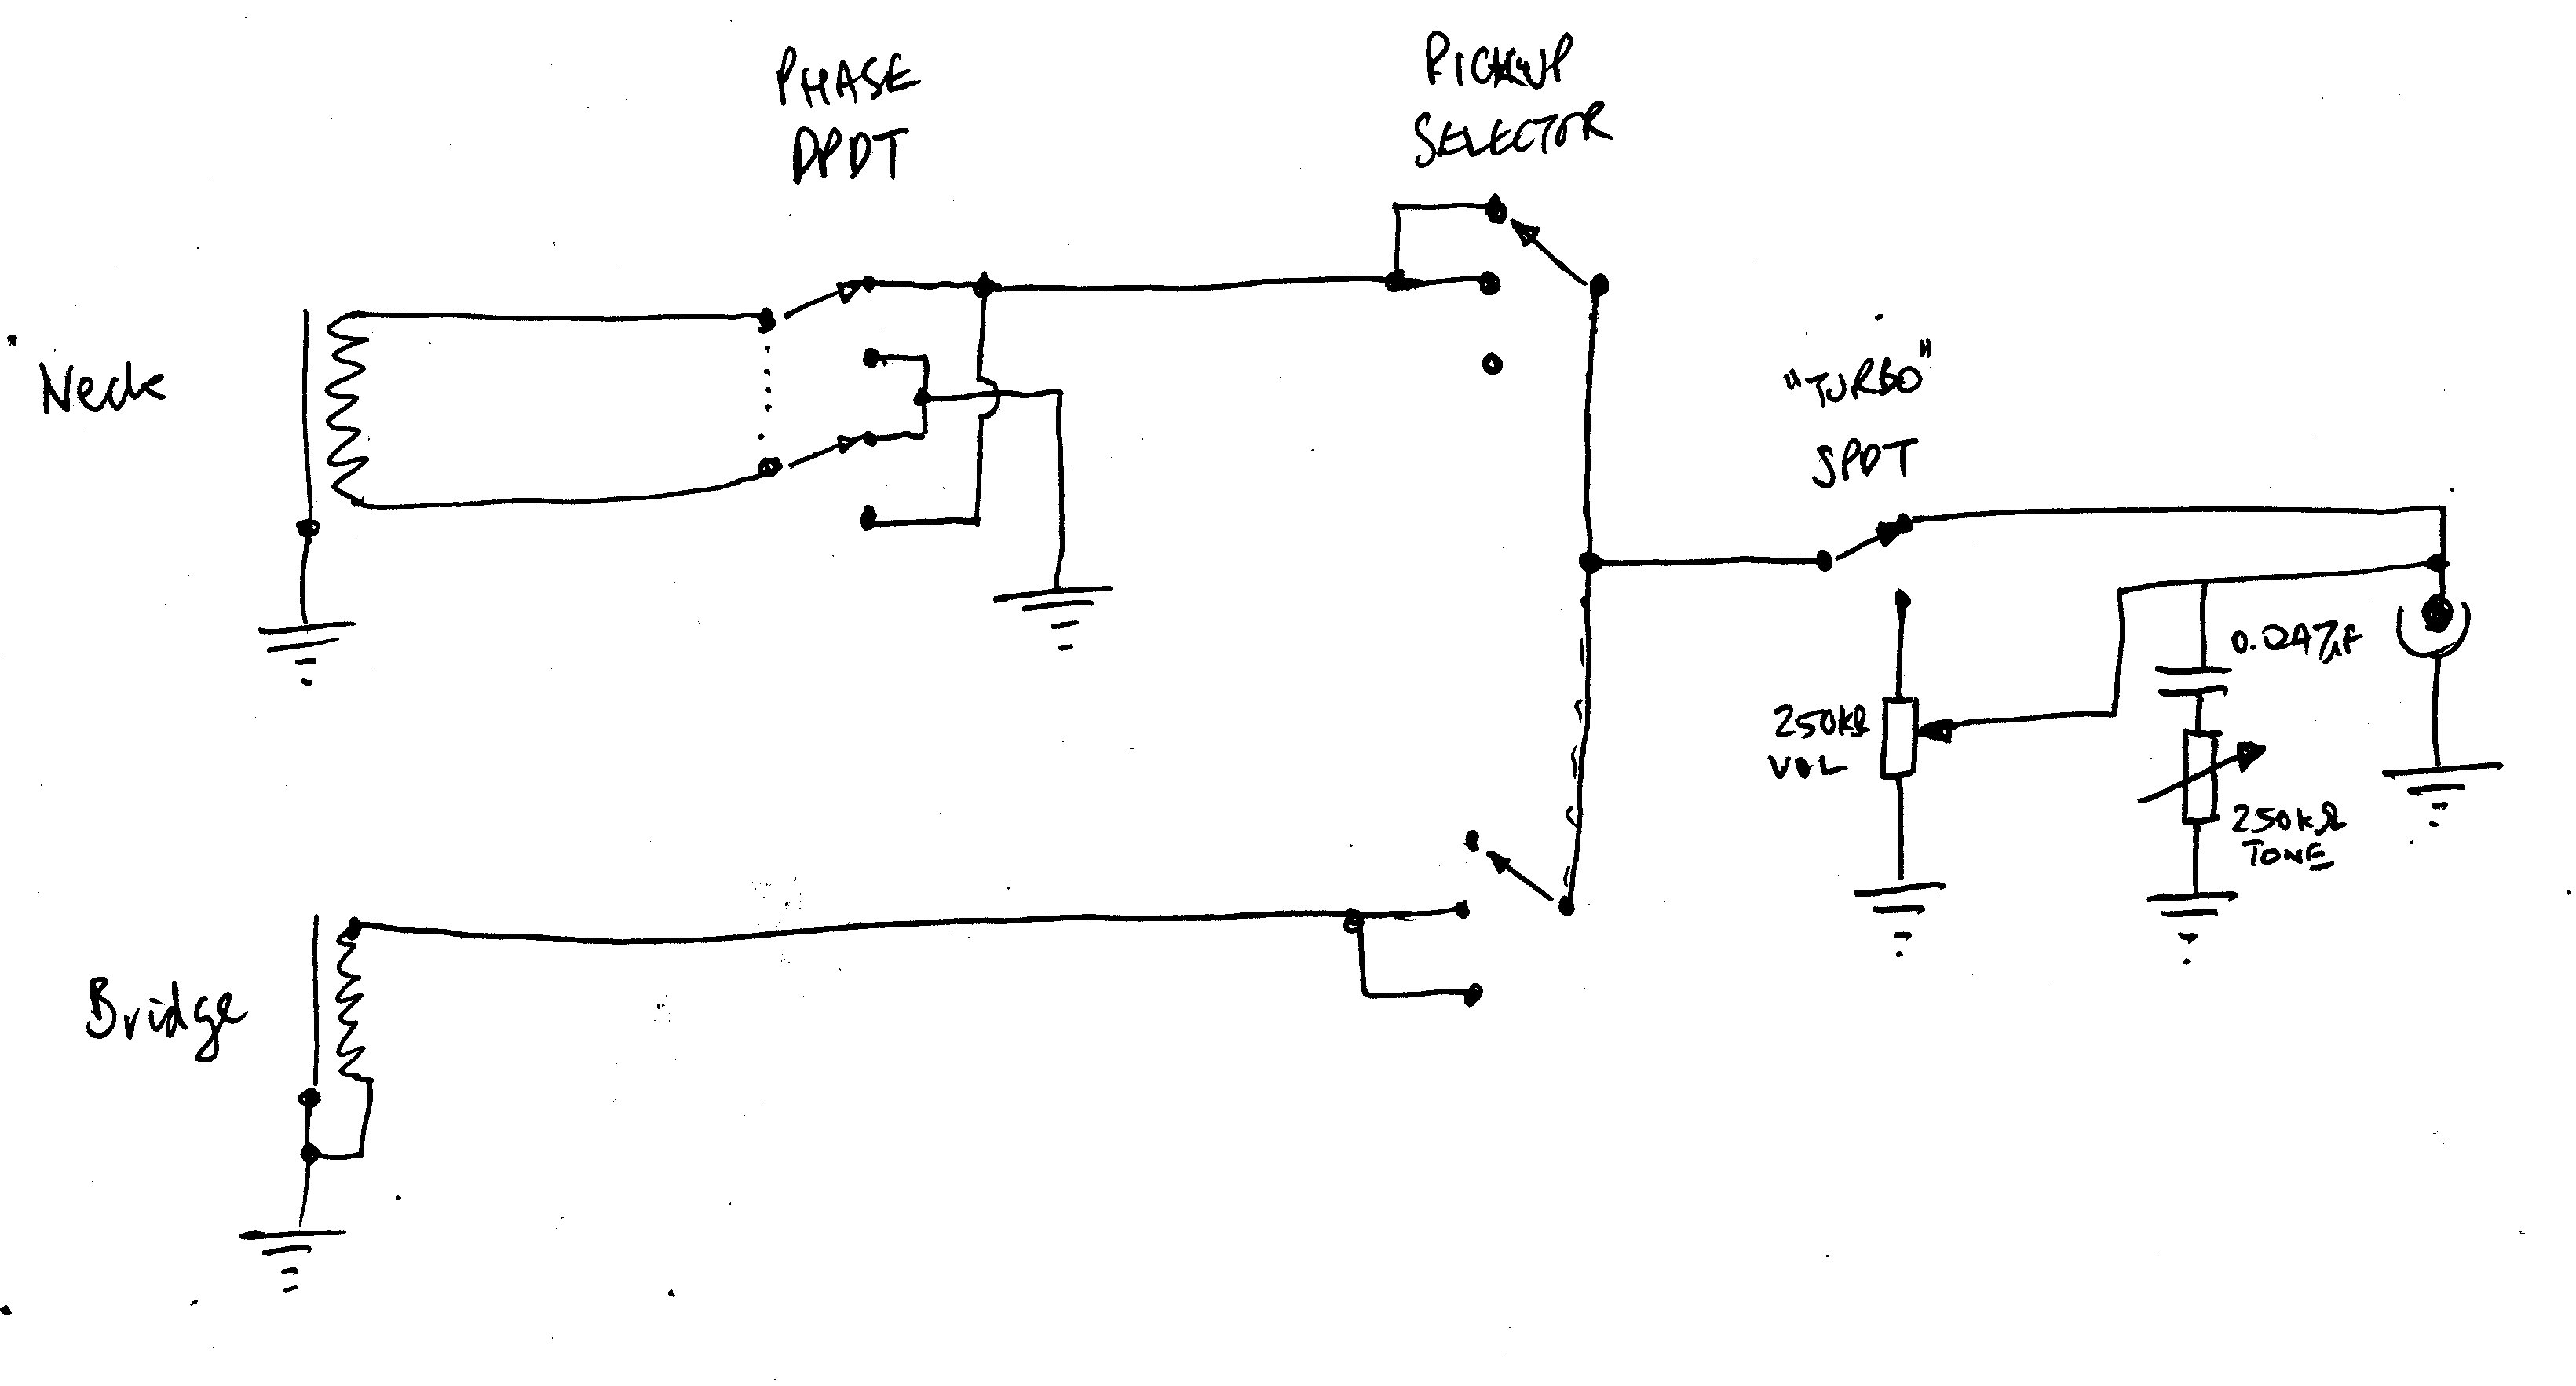 hot rod tele wiring diagram audi a6 c6 bose telecaster tone control schematic get free image about